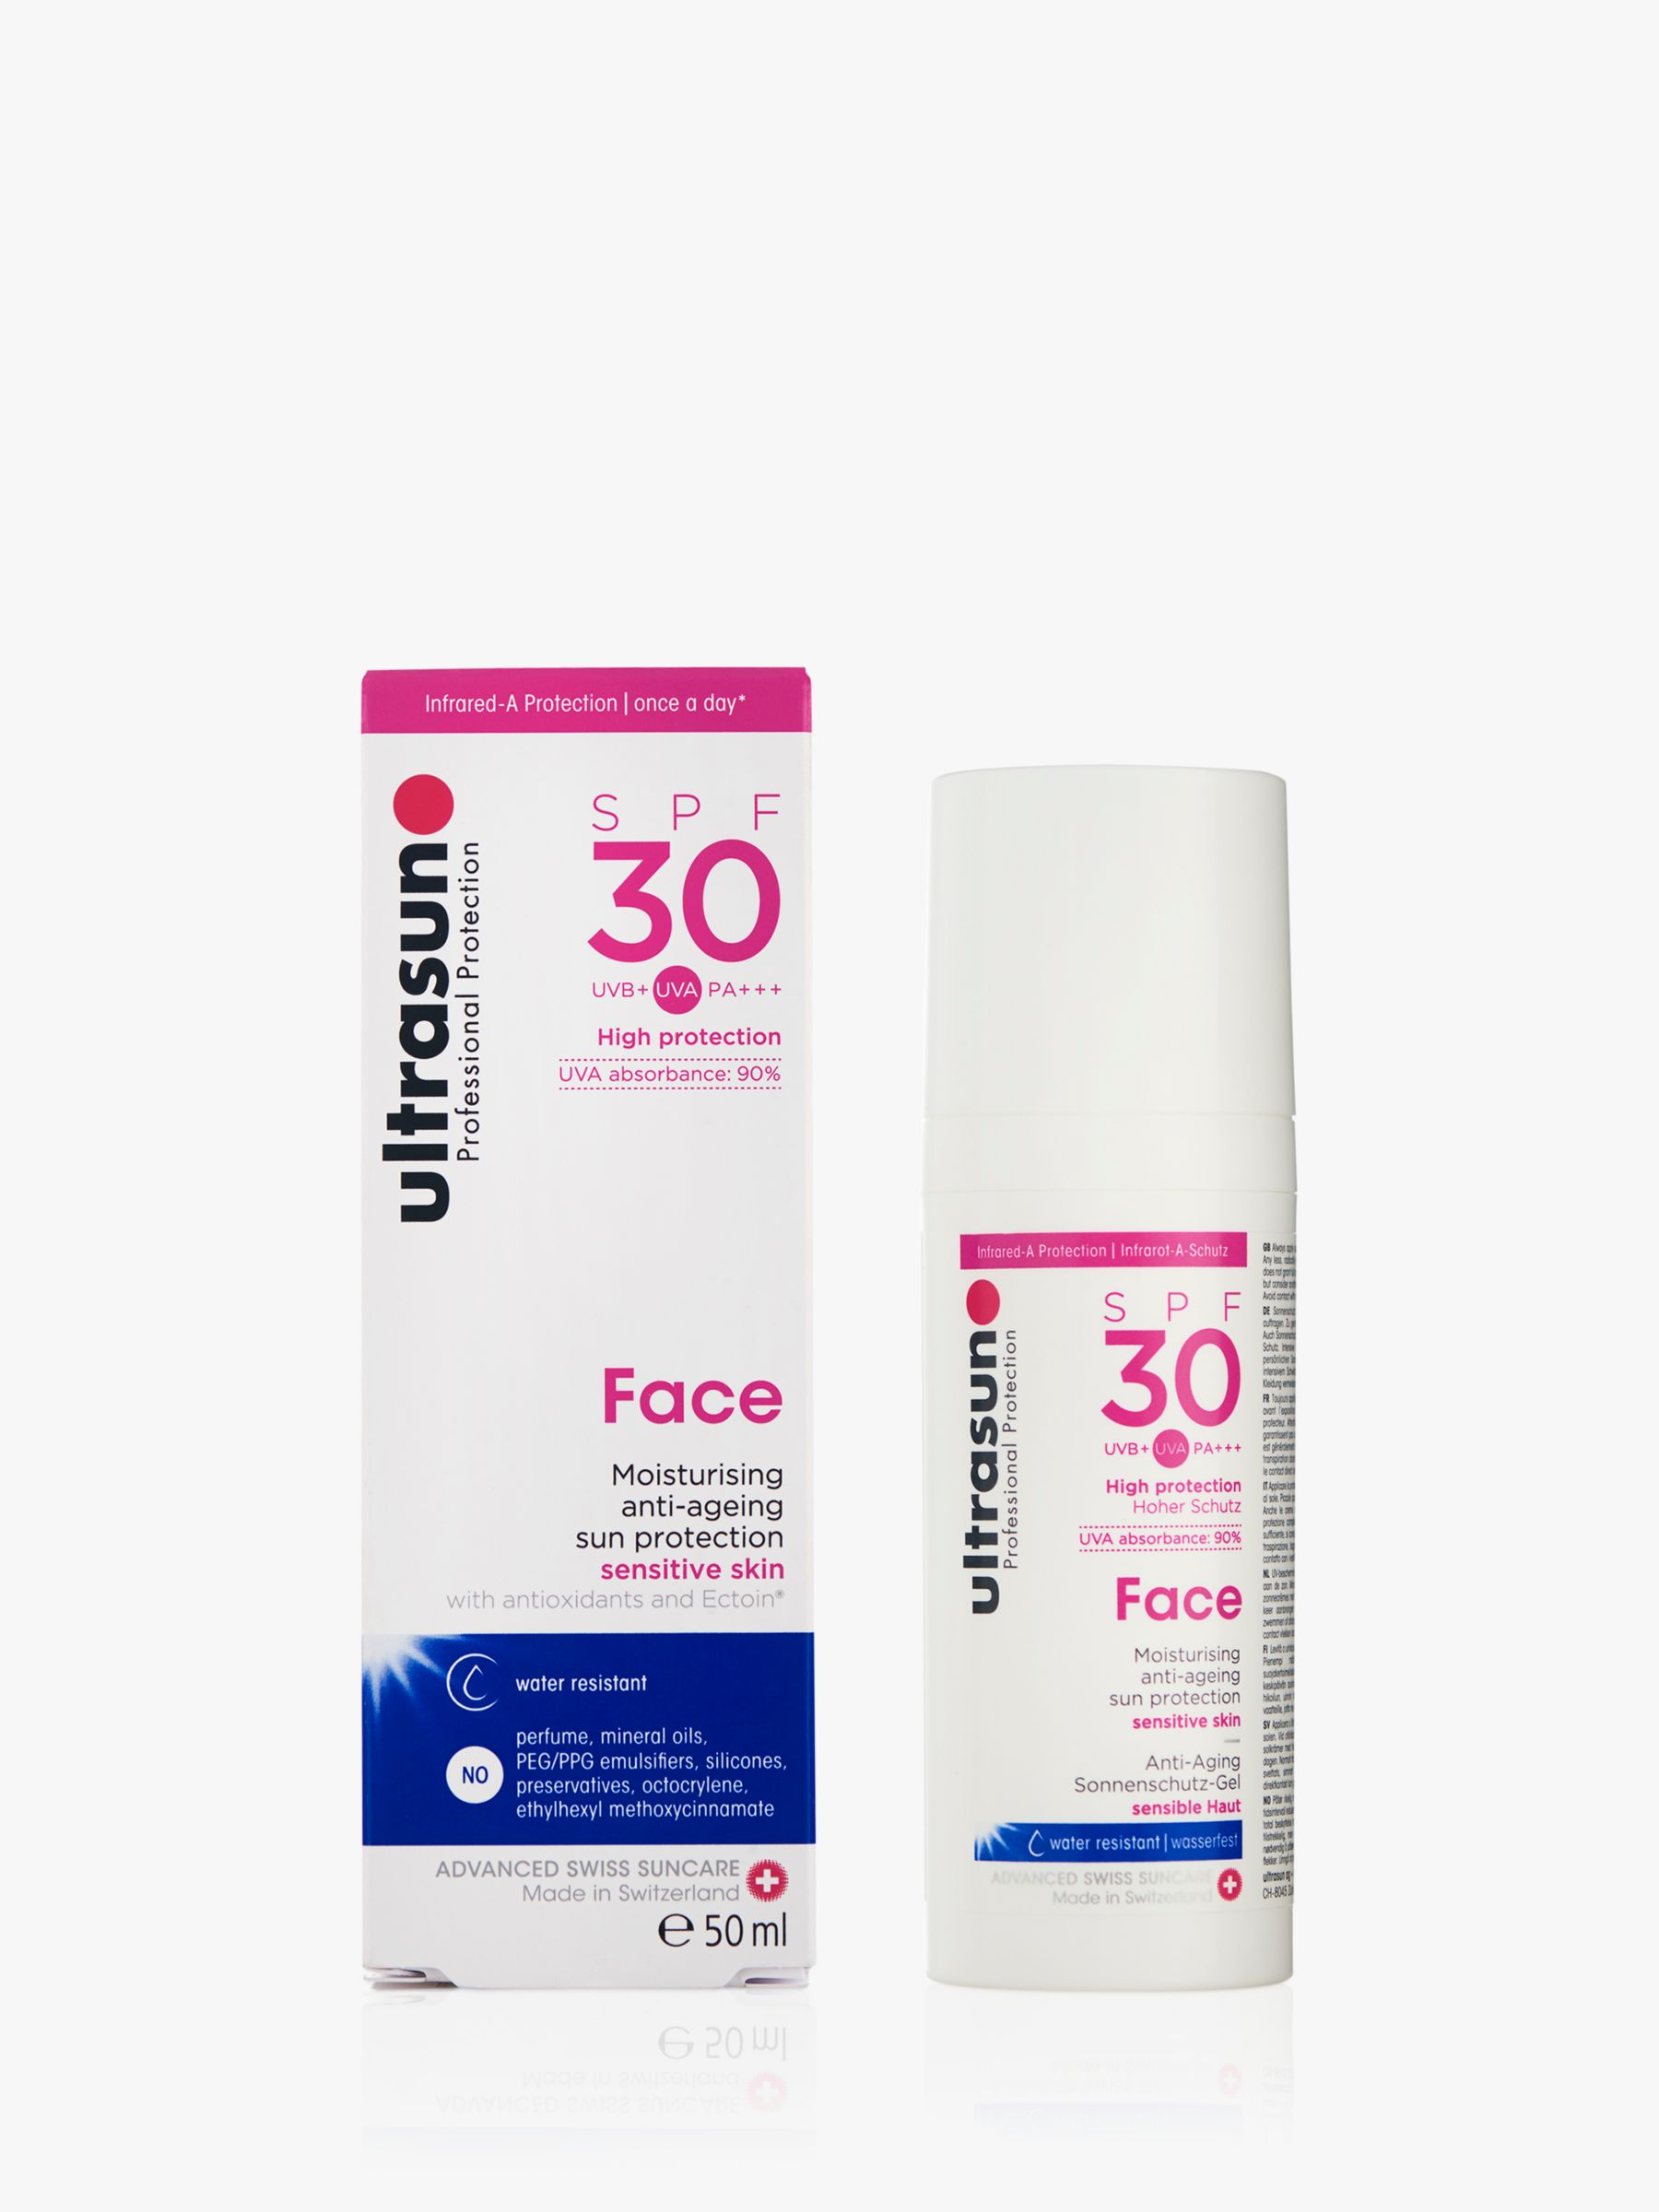 Ultrasun Ultrasun SPF 30 Anti-Ageing Very Sensitive Facial Sun Cream, 50ml